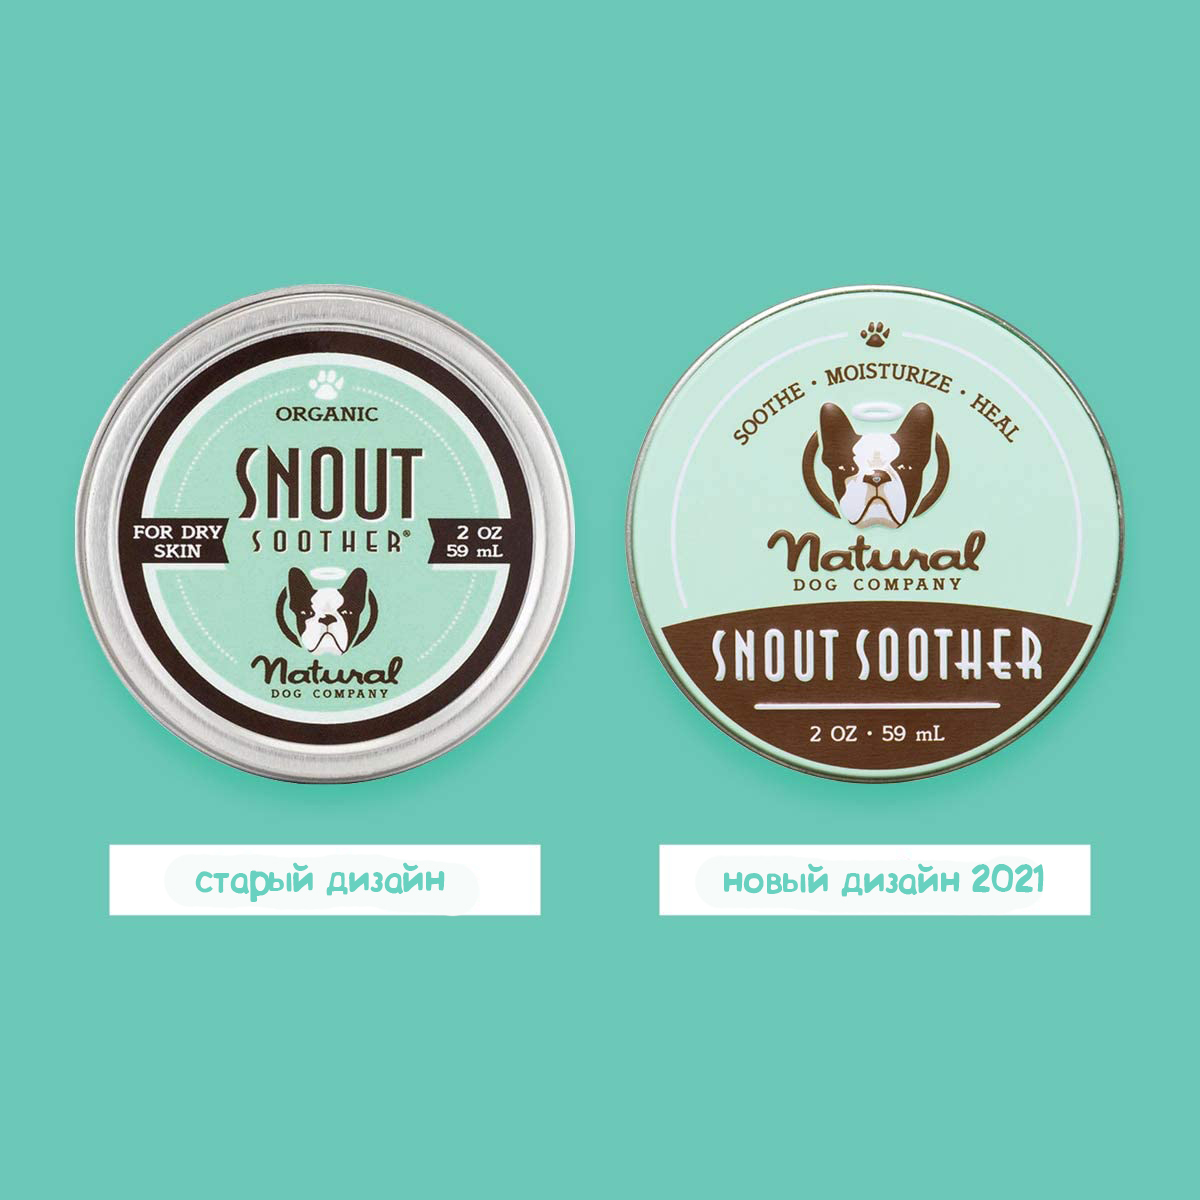 SNOUT SOOTHER 30 мл Фото Bestfordog.ru